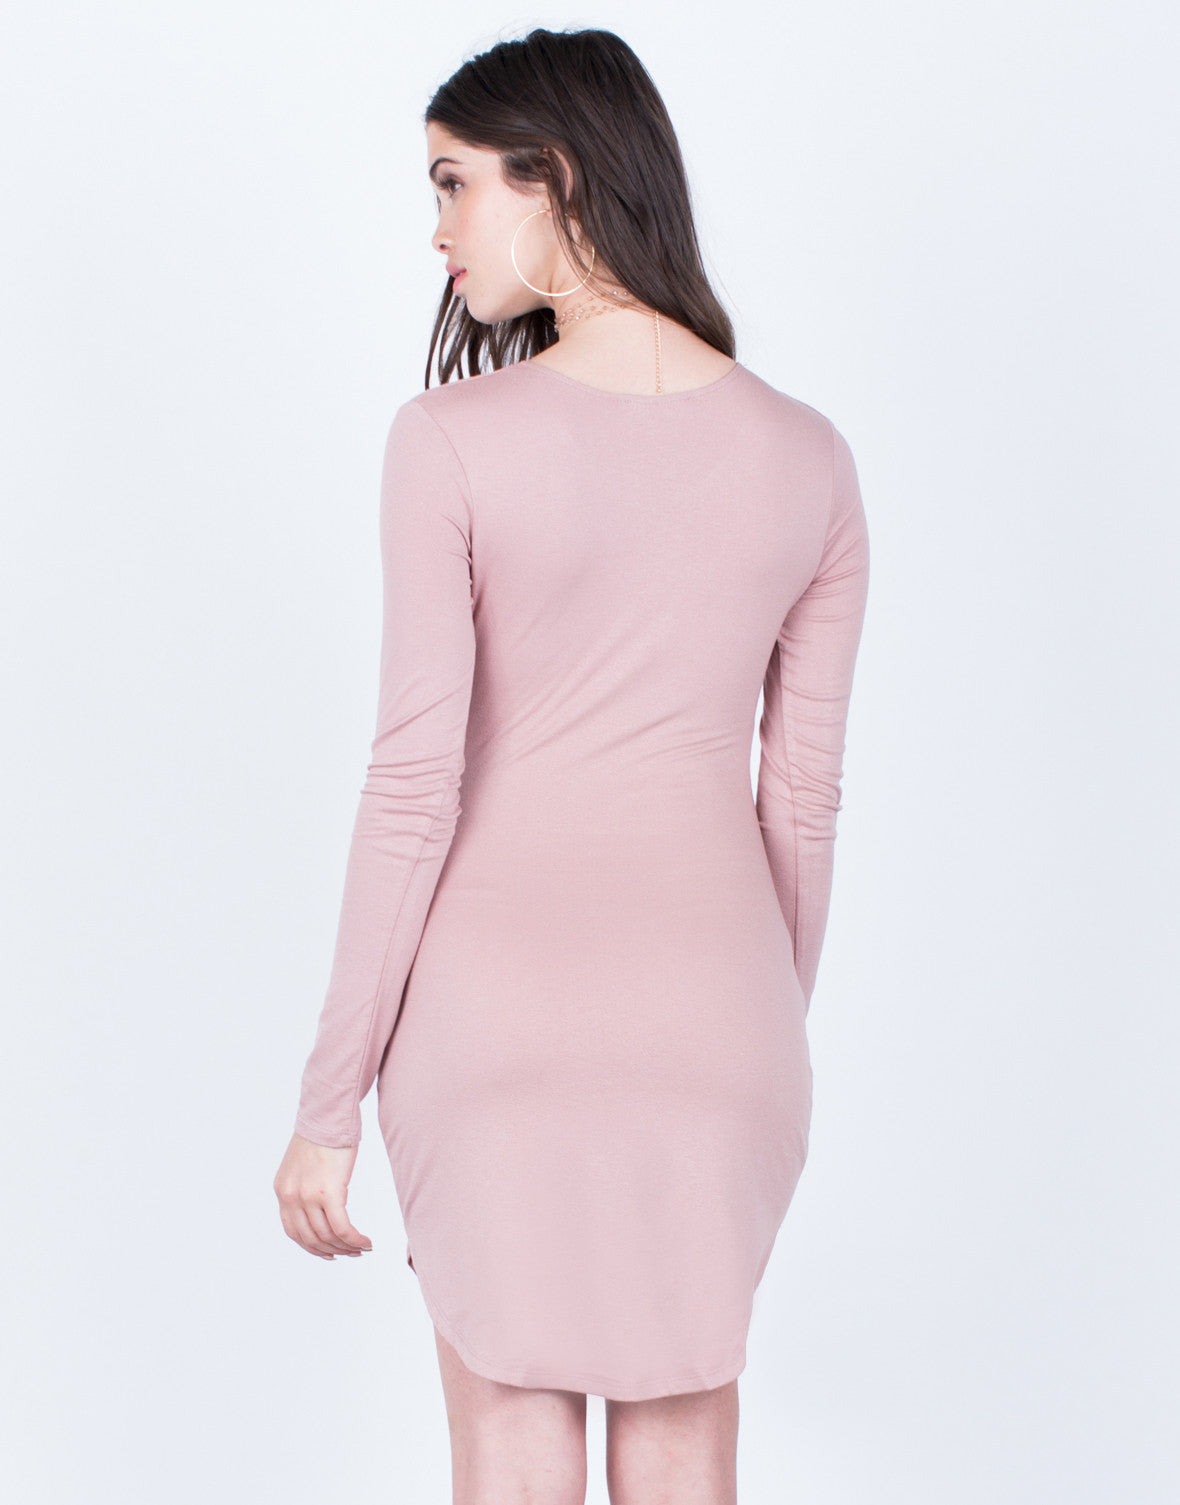 Back View of Long Sleeve Bodycon Dress